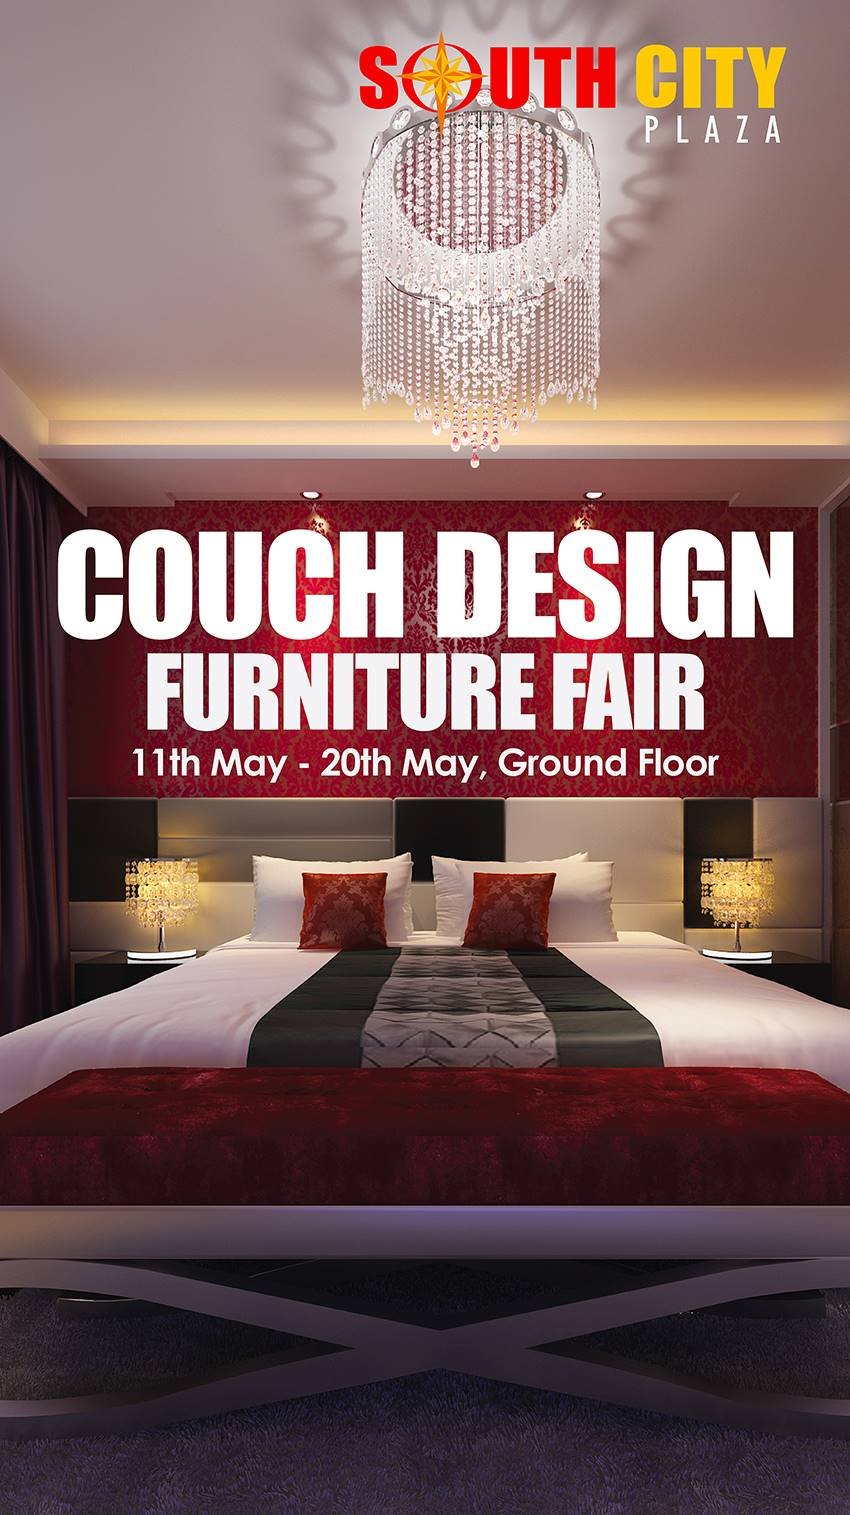 Couch Design Furniture Fair 11st May 2018 20th